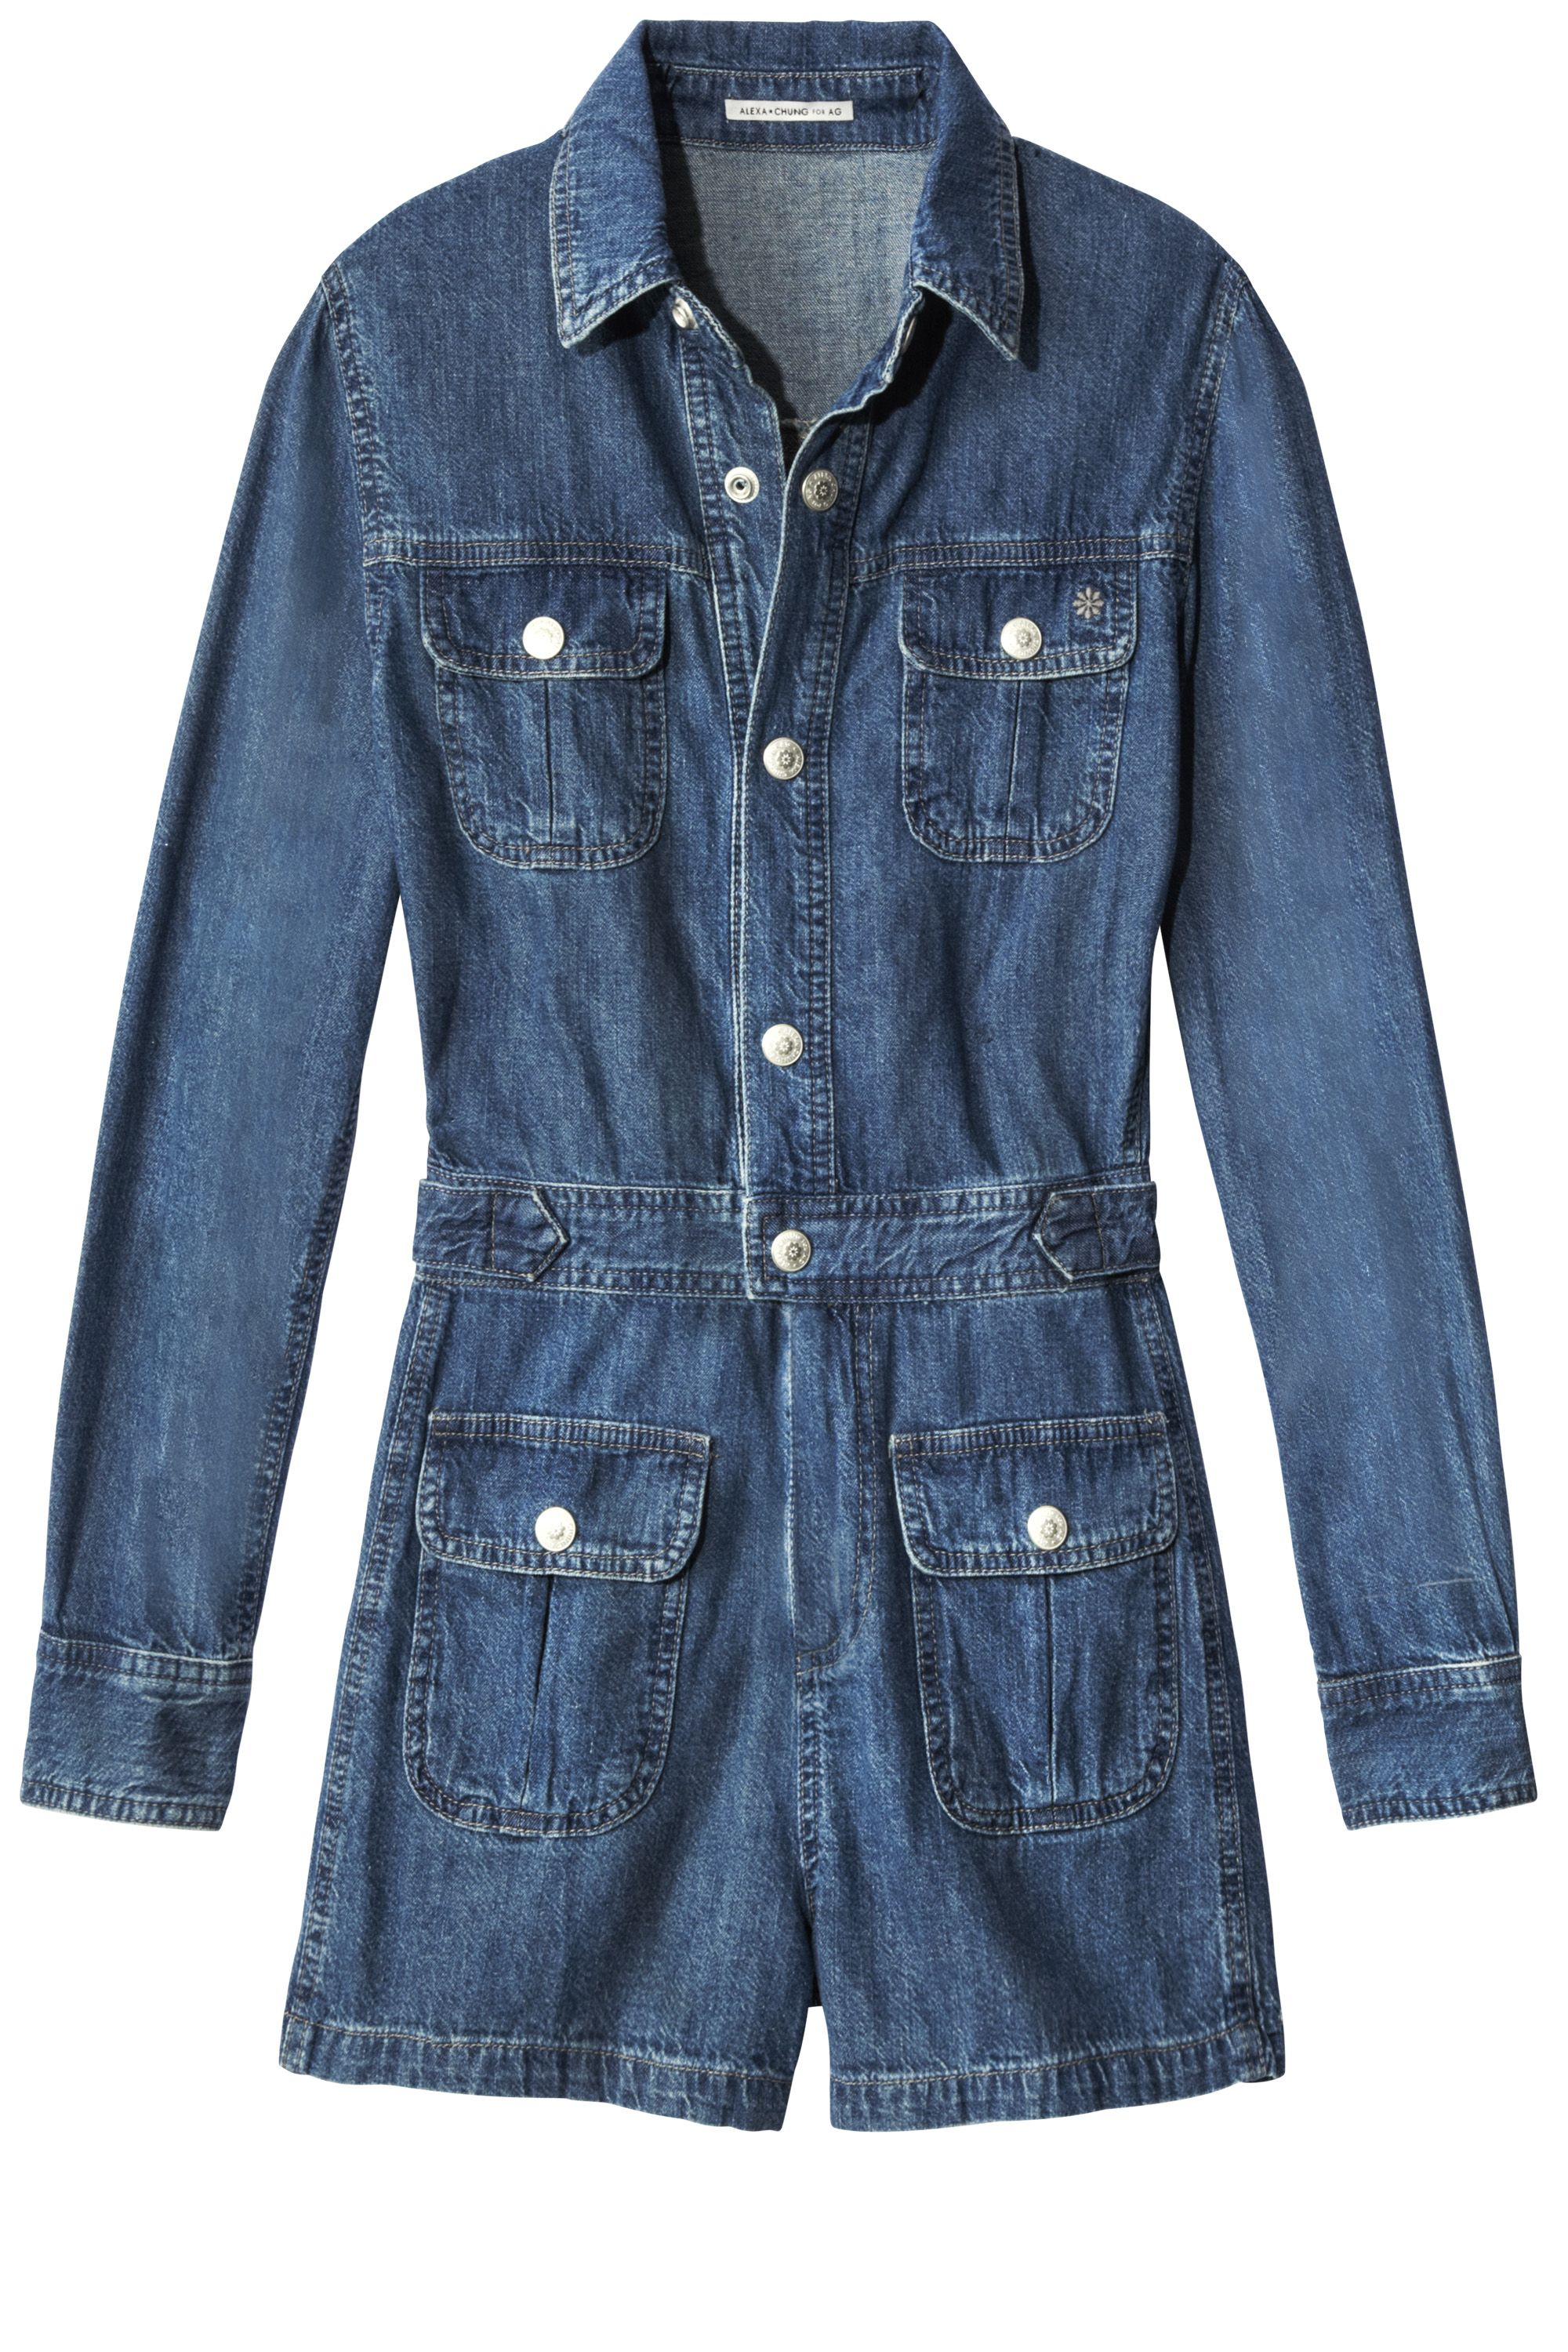 "<p><strong>Alexa Chung for AG  </strong>jumpsuit, $345, <a href=""https://shop.harpersbazaar.com/designers/a/alexa-chung-for-ag/denim-loretta-romper-4732.html"" target=""_blank"">shopBAZAAR.com</a><img src=""http://assets.hdmtools.com/images/HBZ/Shop.svg"" class=""icon shop"">.</p>"